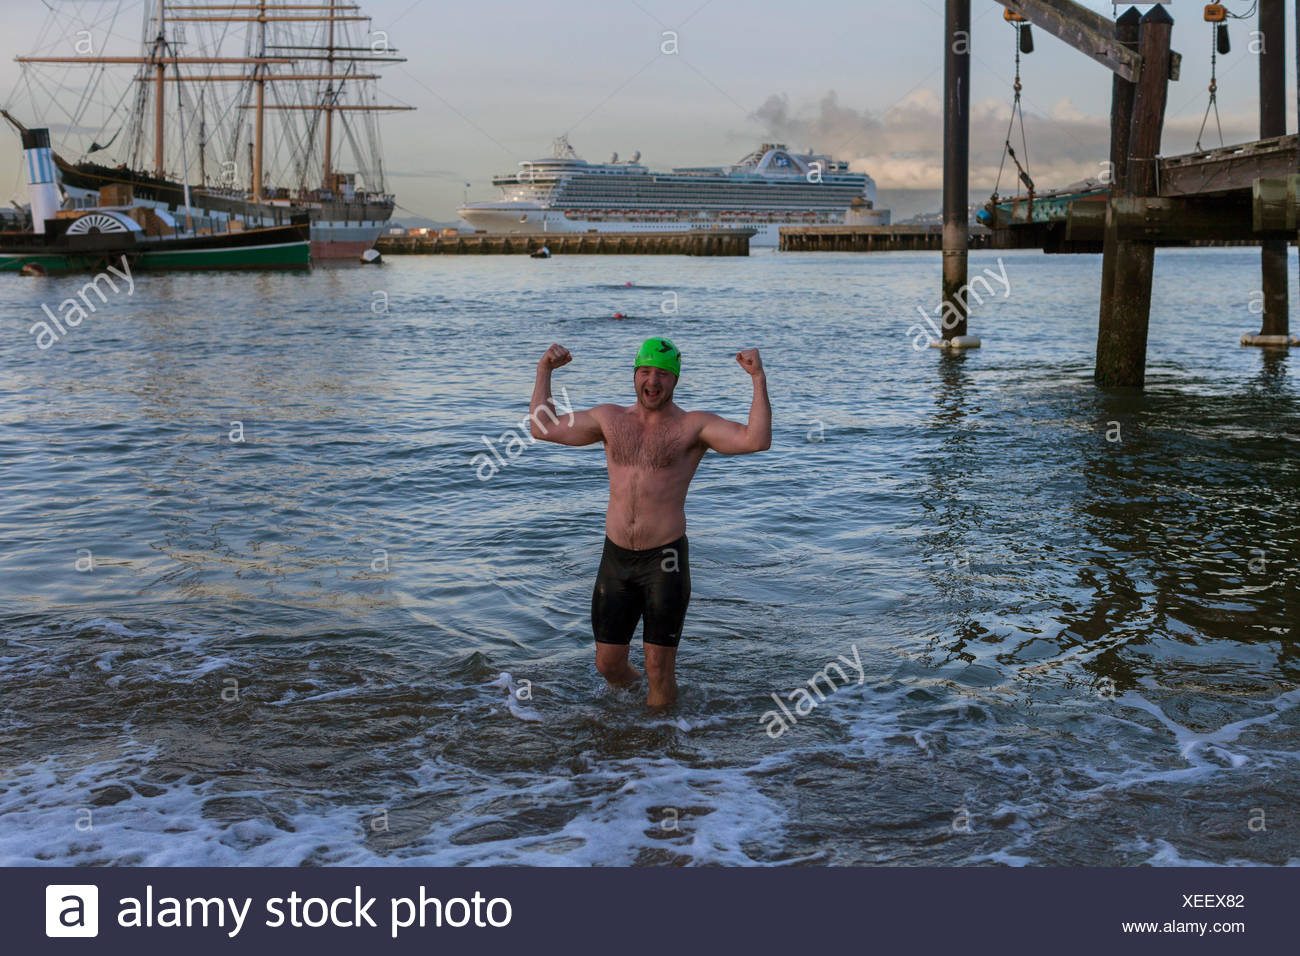 man in swimming trunks flexing muscles while standing in water, Dolphin Club, San Francisco, California, USA - Stock Image